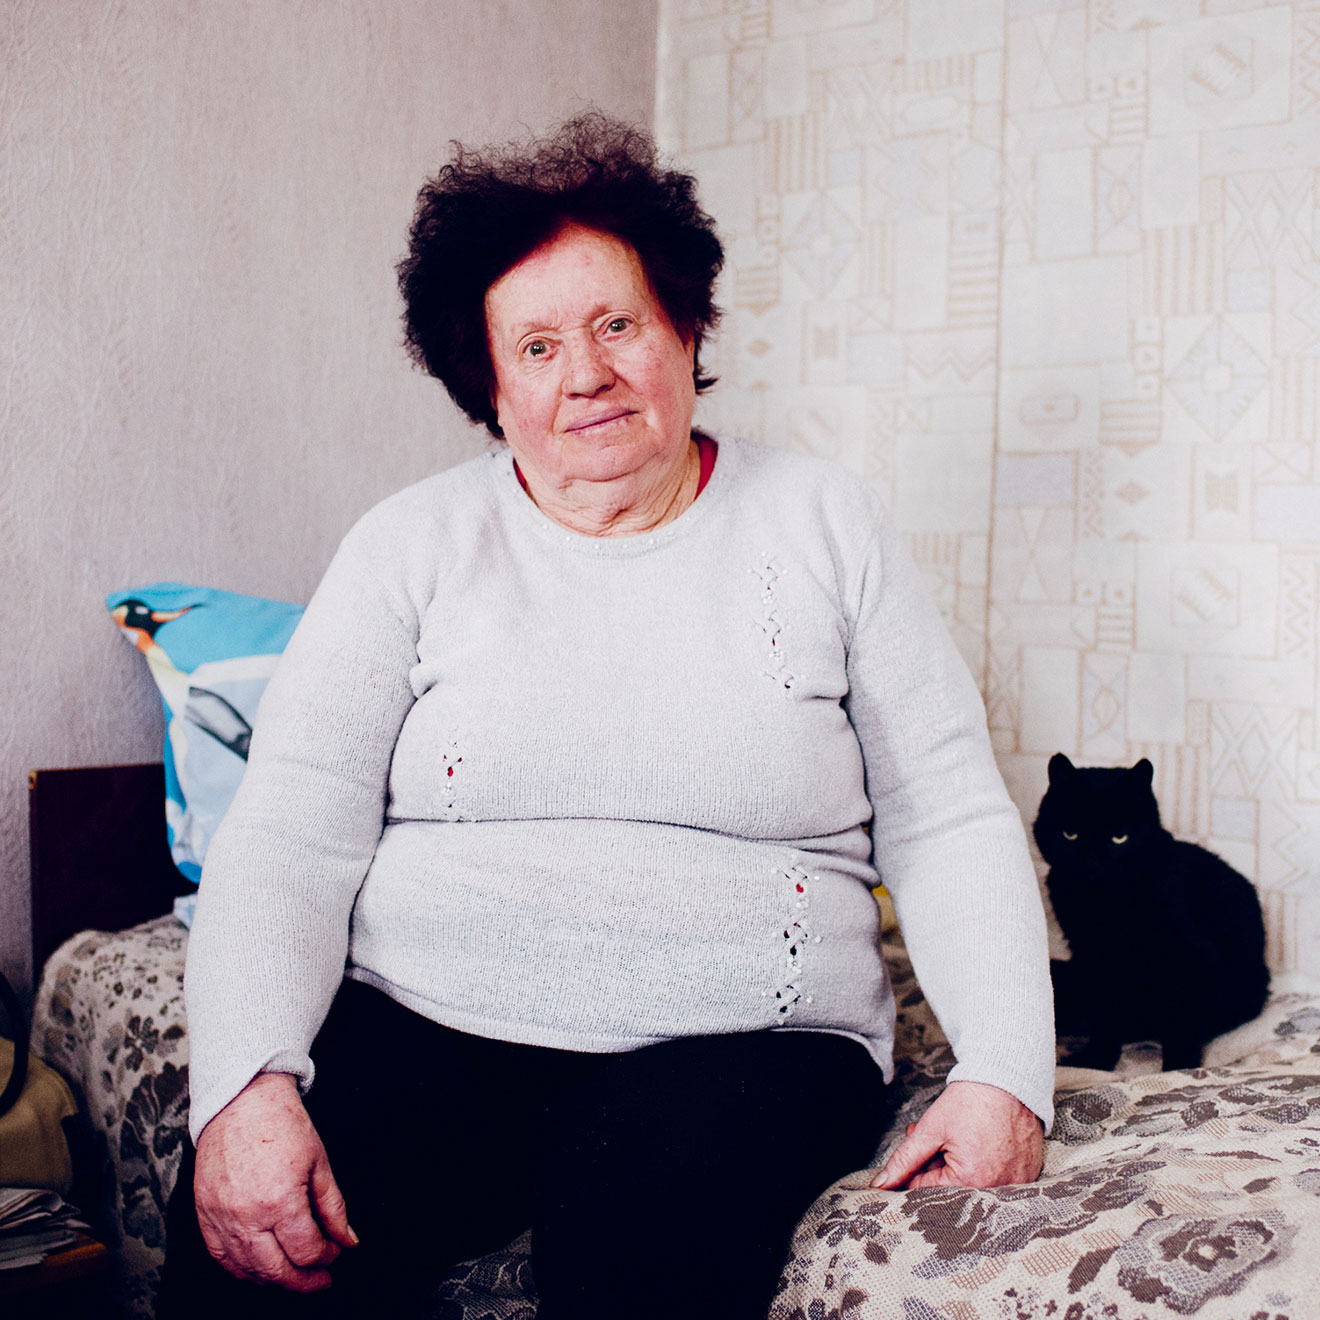 A photograph of one of Ukraine's eldery by Chris Nunn. From Weapons of Reason: The New Old by Human After All